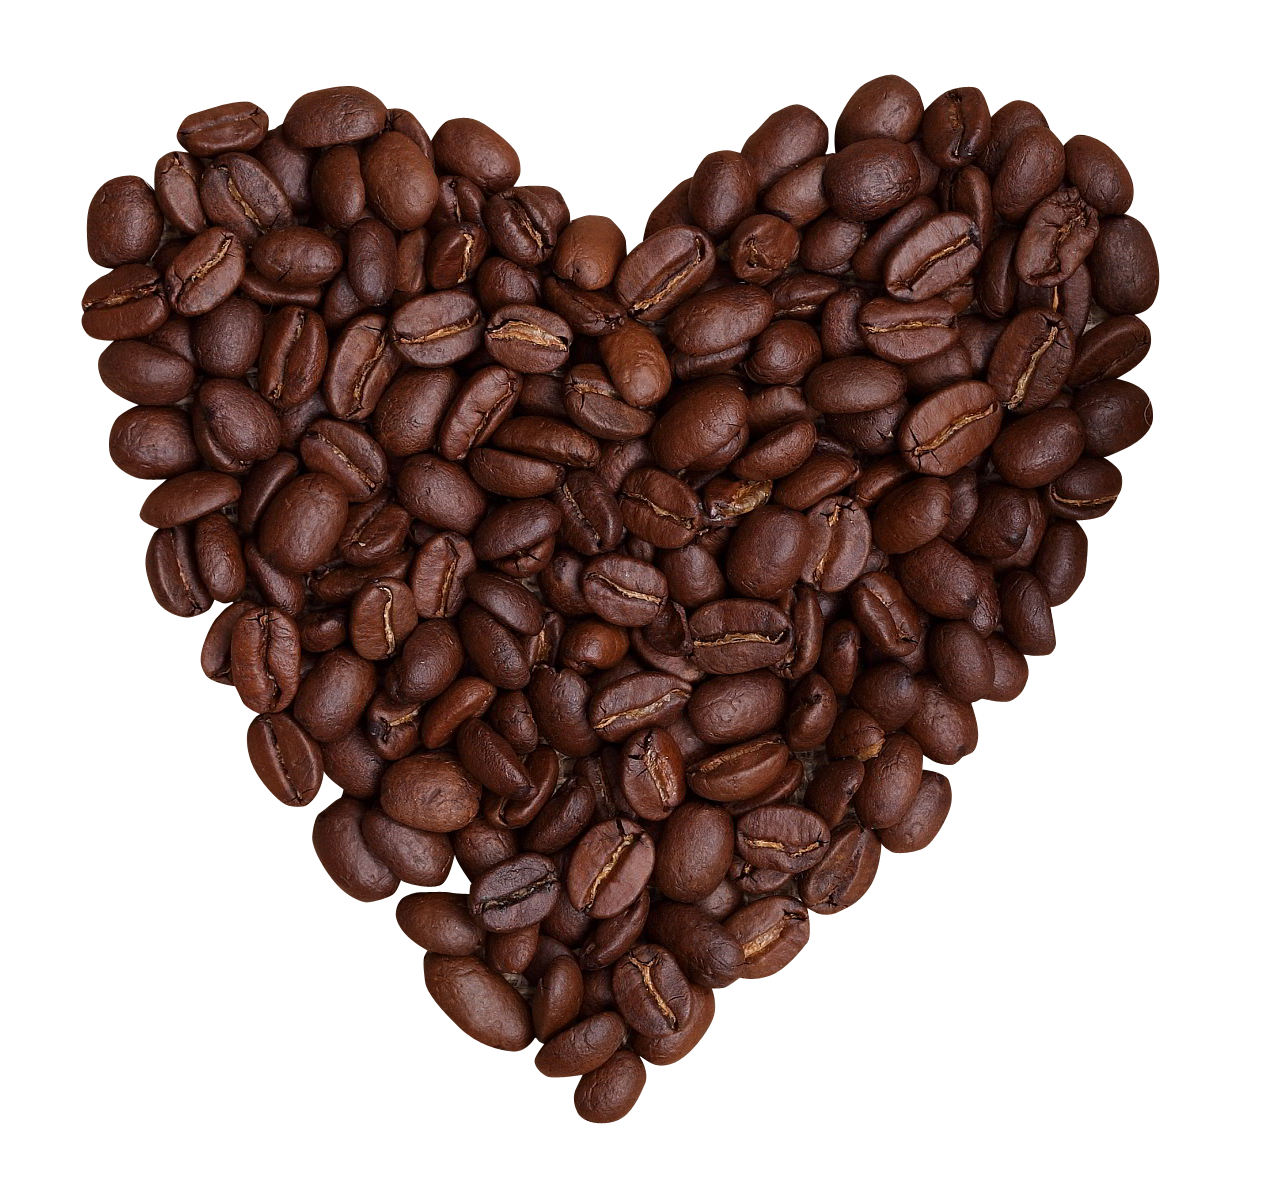 Coffee Beans PNG Transparent Image - PngPix